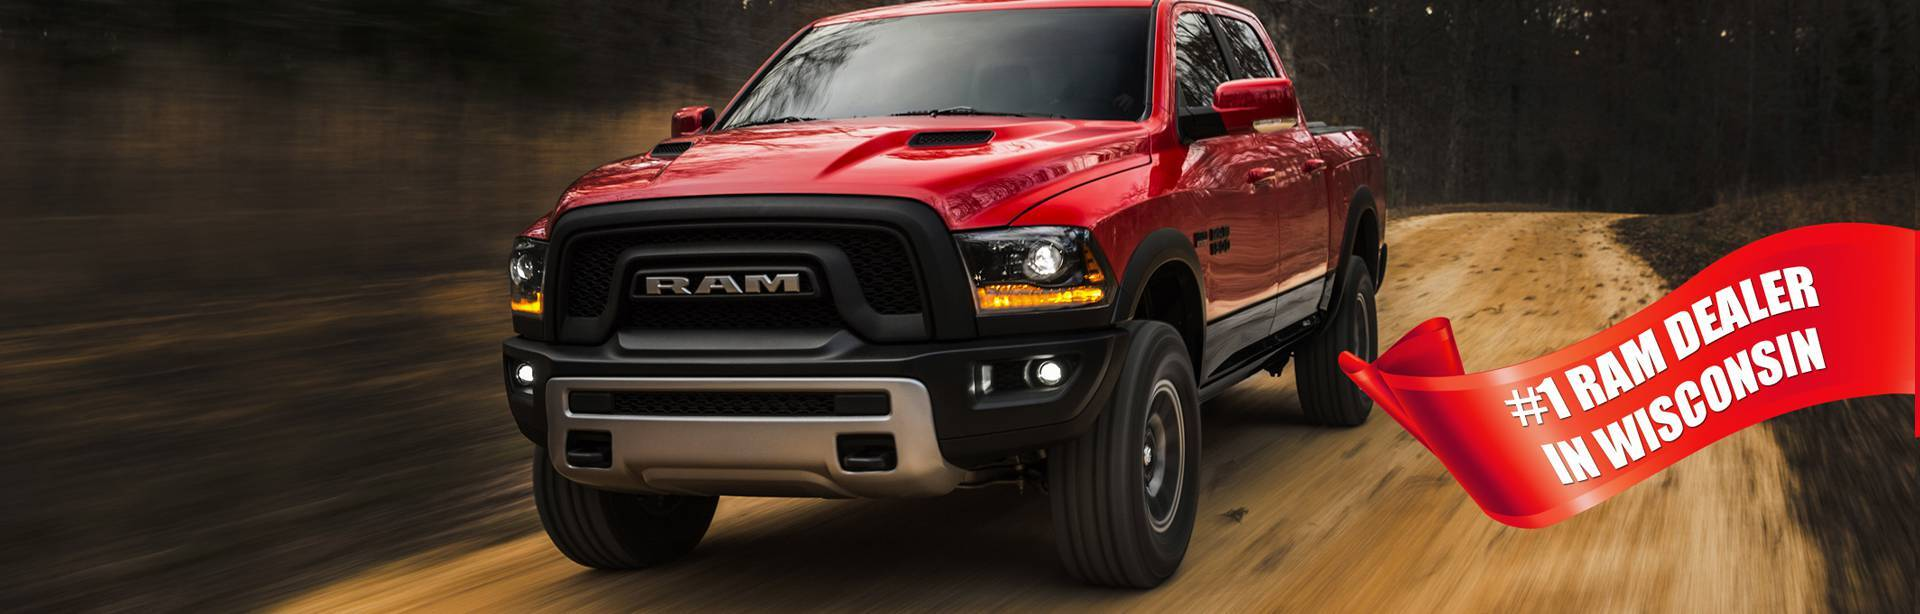 #1 Ram Dealer In Wisconsin